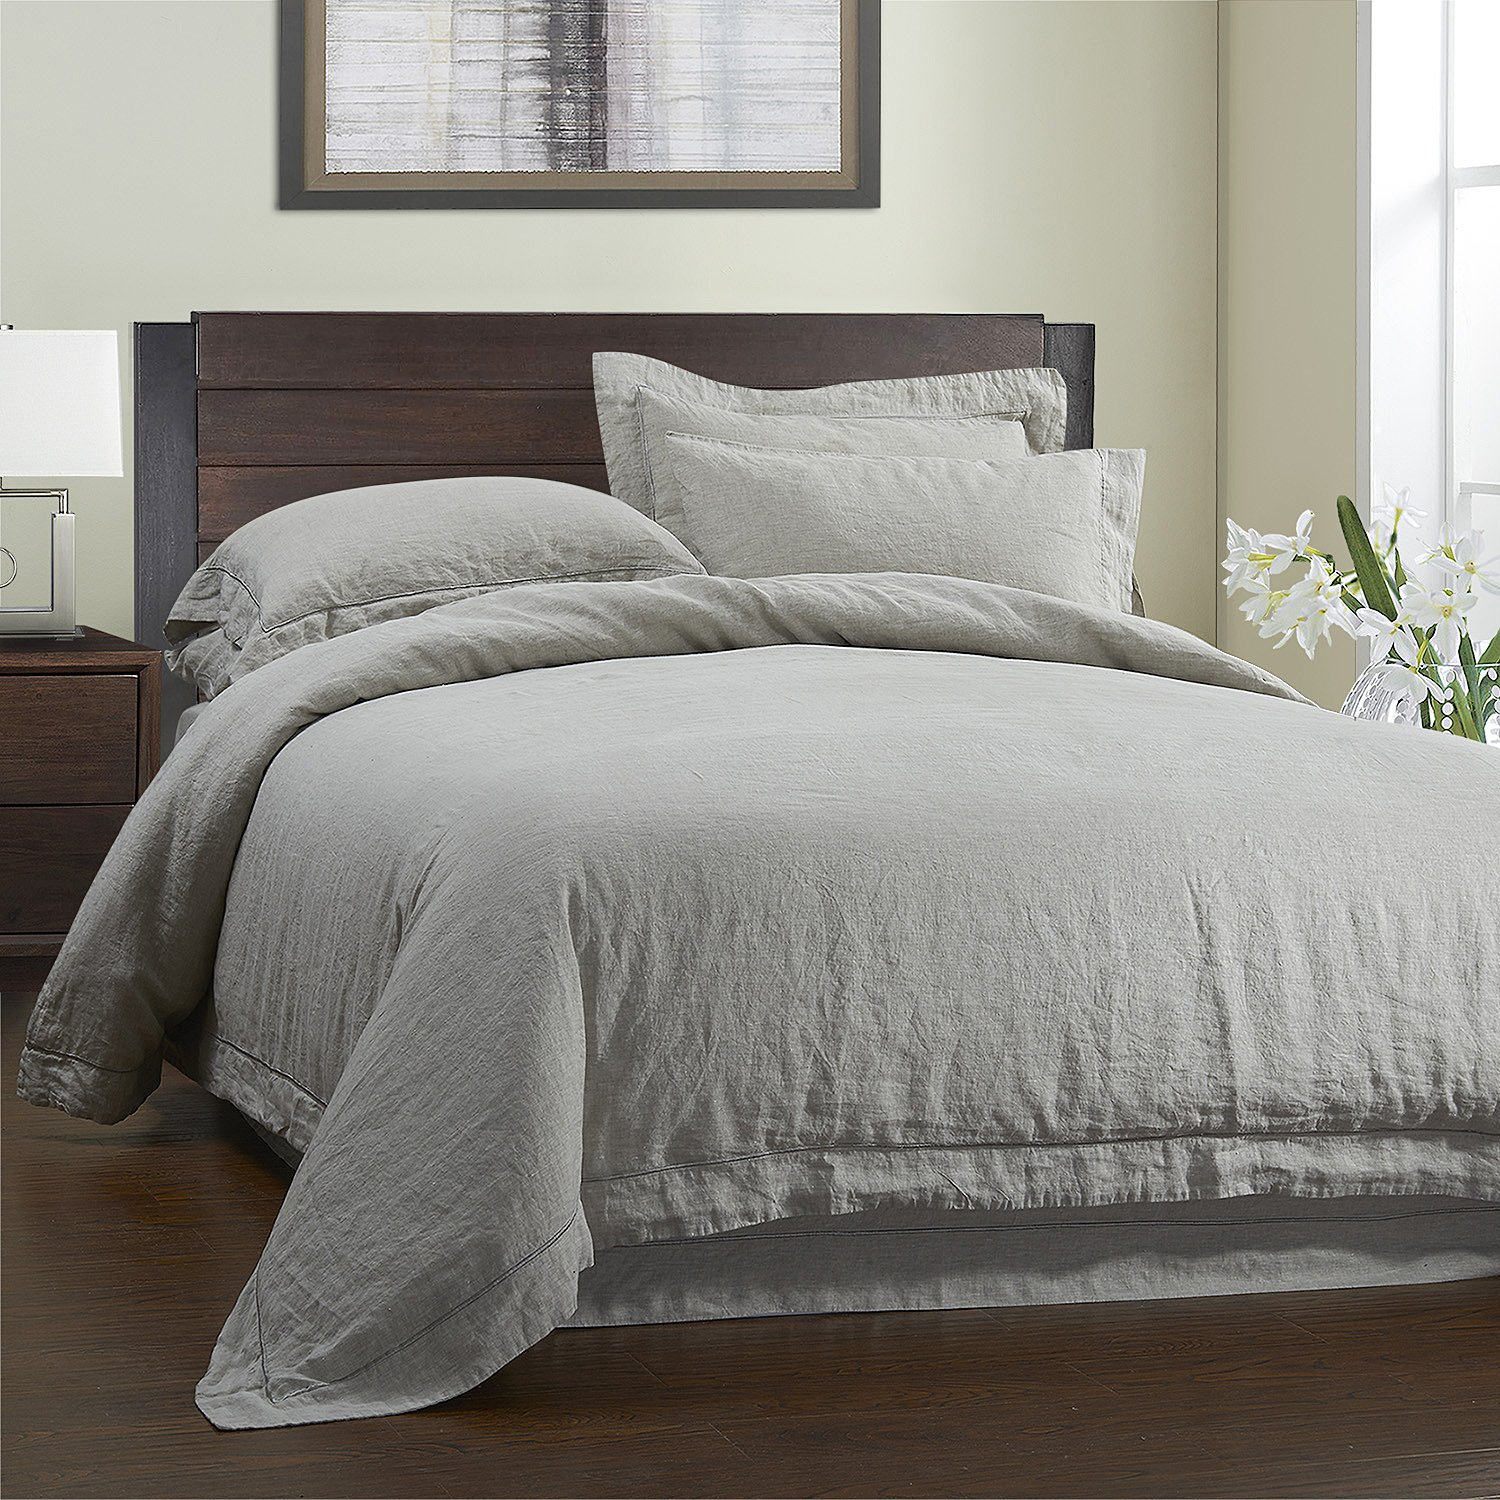 Simple&Opulence 3 Piece Solid 100% Linen Duvet Cover Set (Full, Grey) by Simple&Opulence